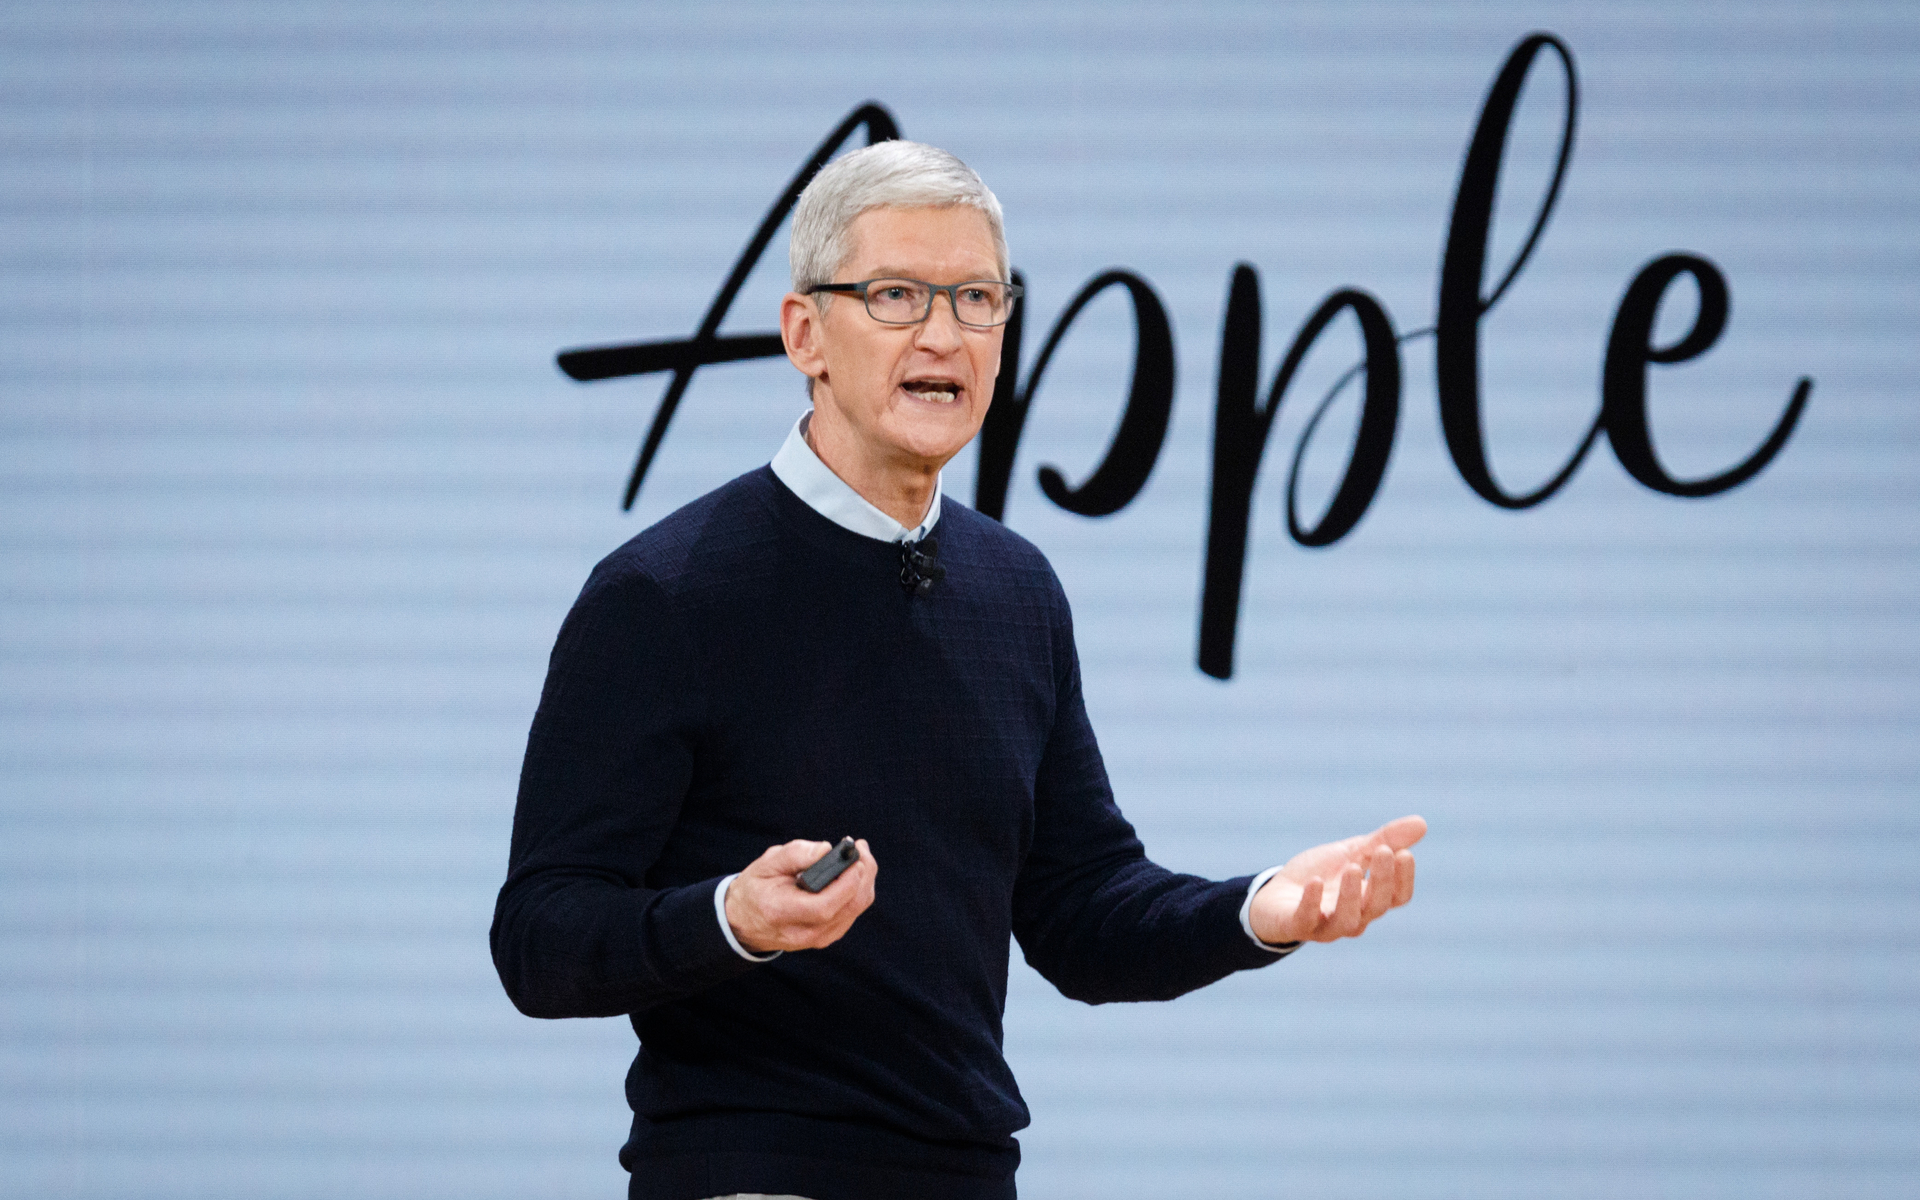 Apple CEO Tim Cook talking about crypto